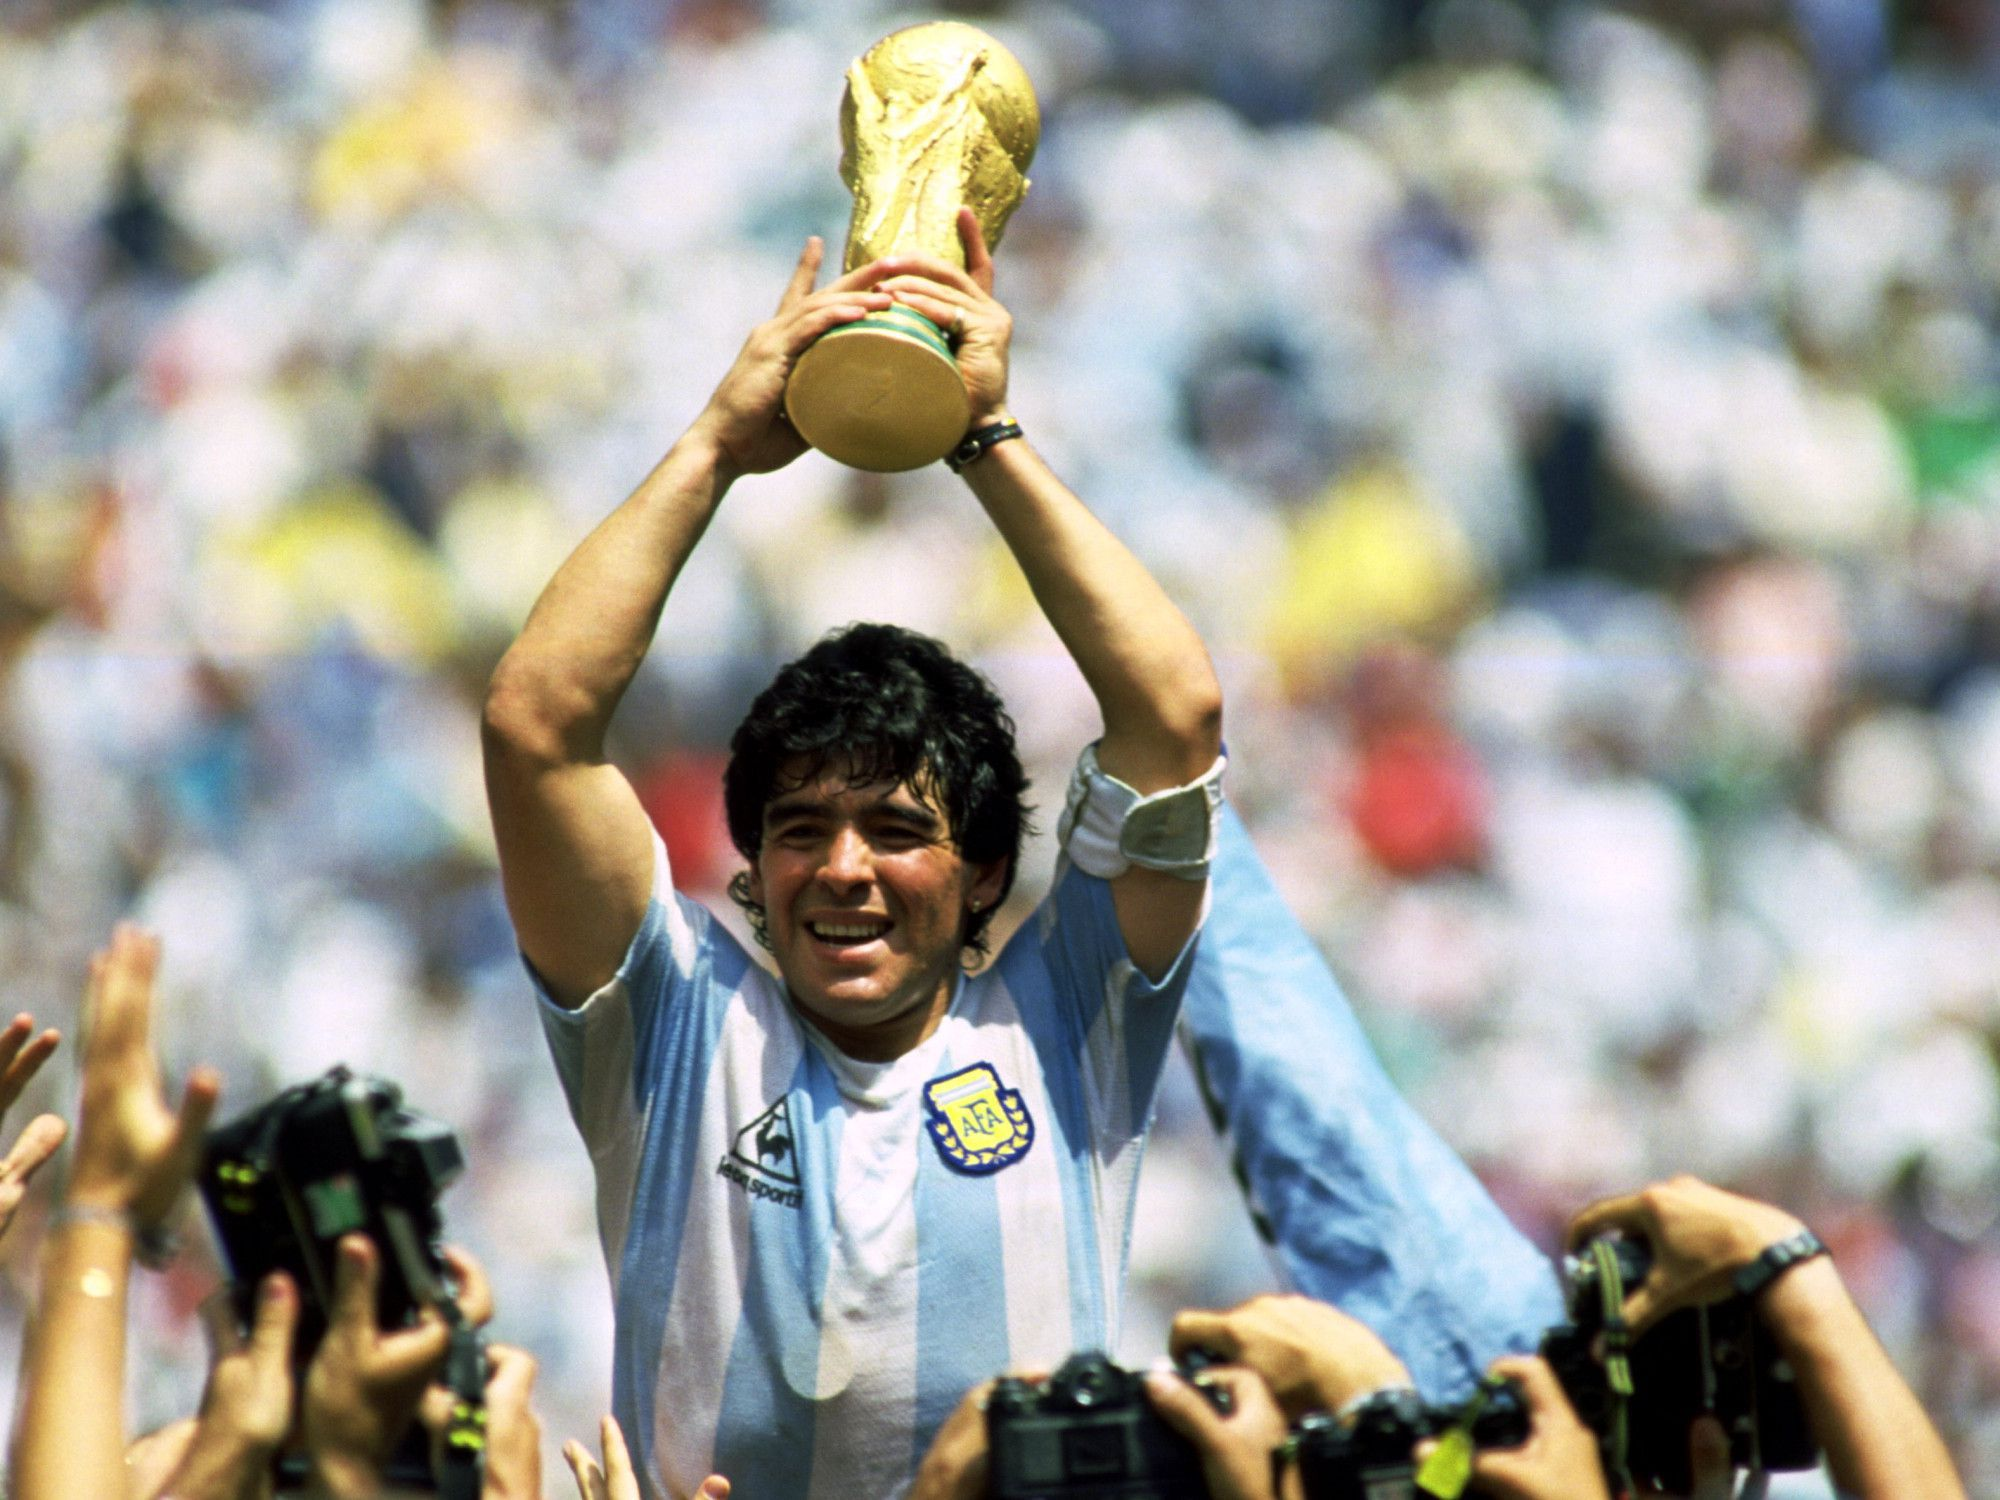 Diego Armando Maradona Wallpapers and Background Images   stmednet 2000x1500